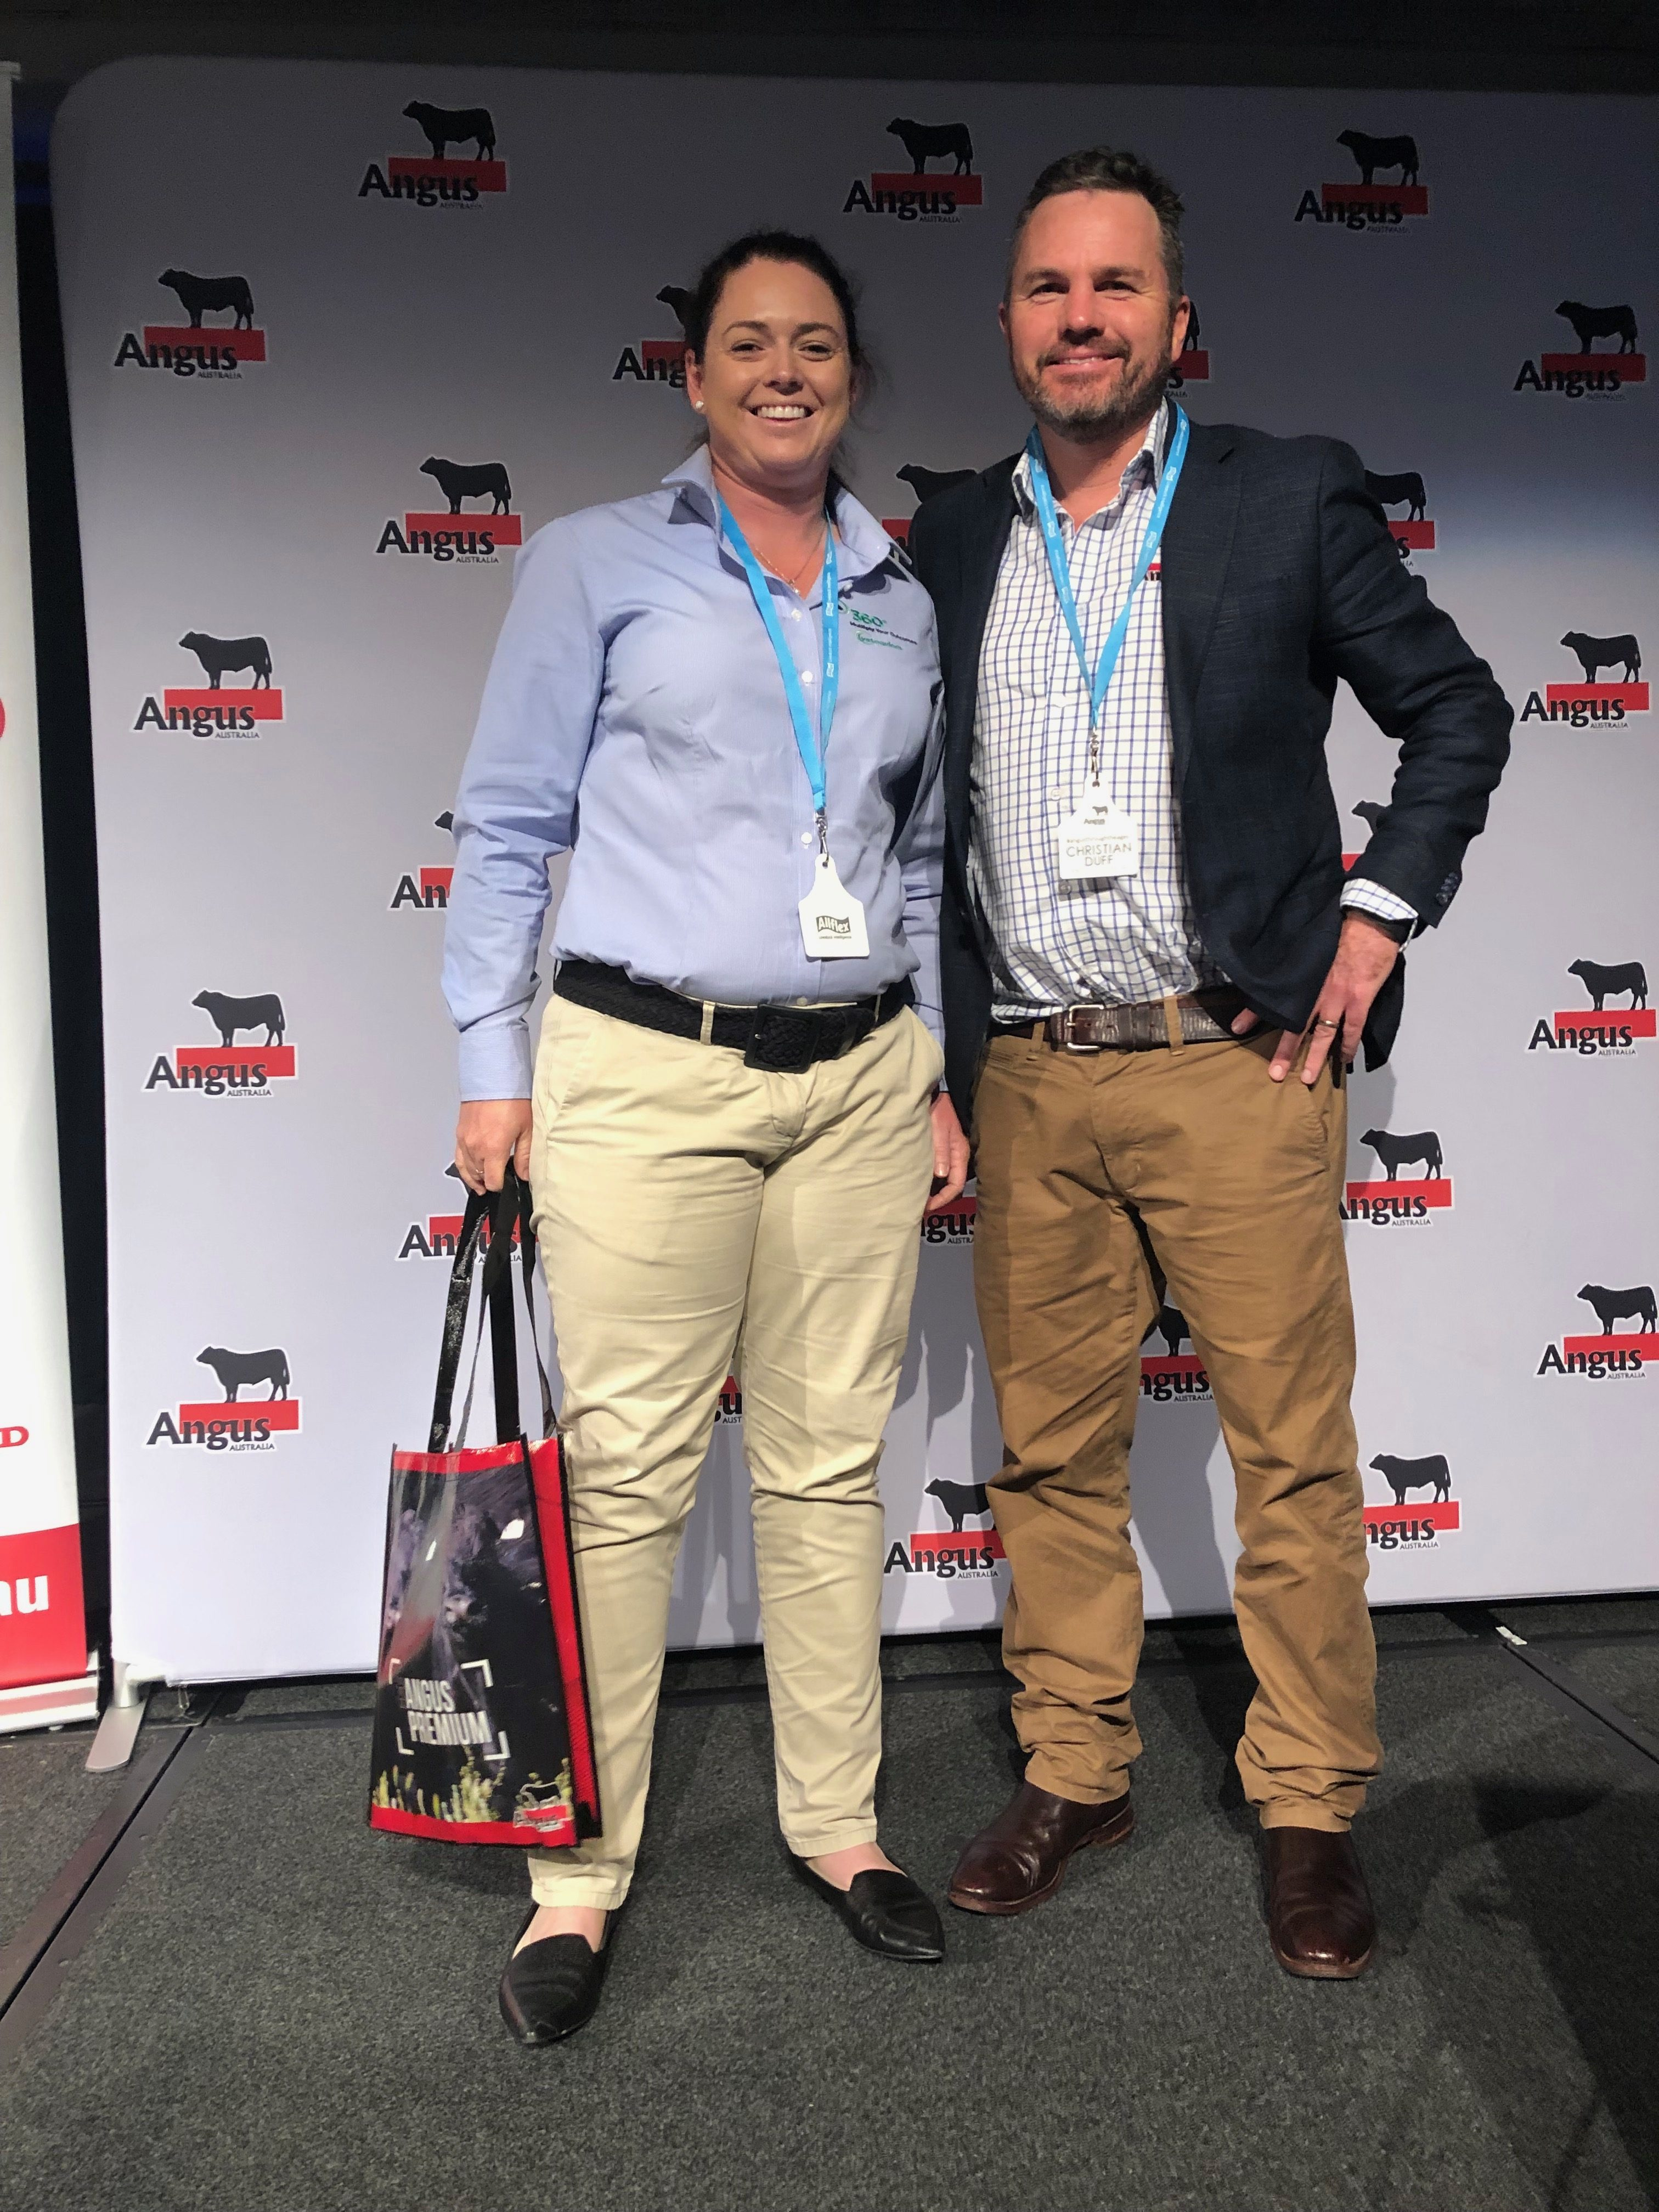 Christian Duff, Angus Australia Strategic Projects Manager with Dr Sophia Edwards, Vetoquinol